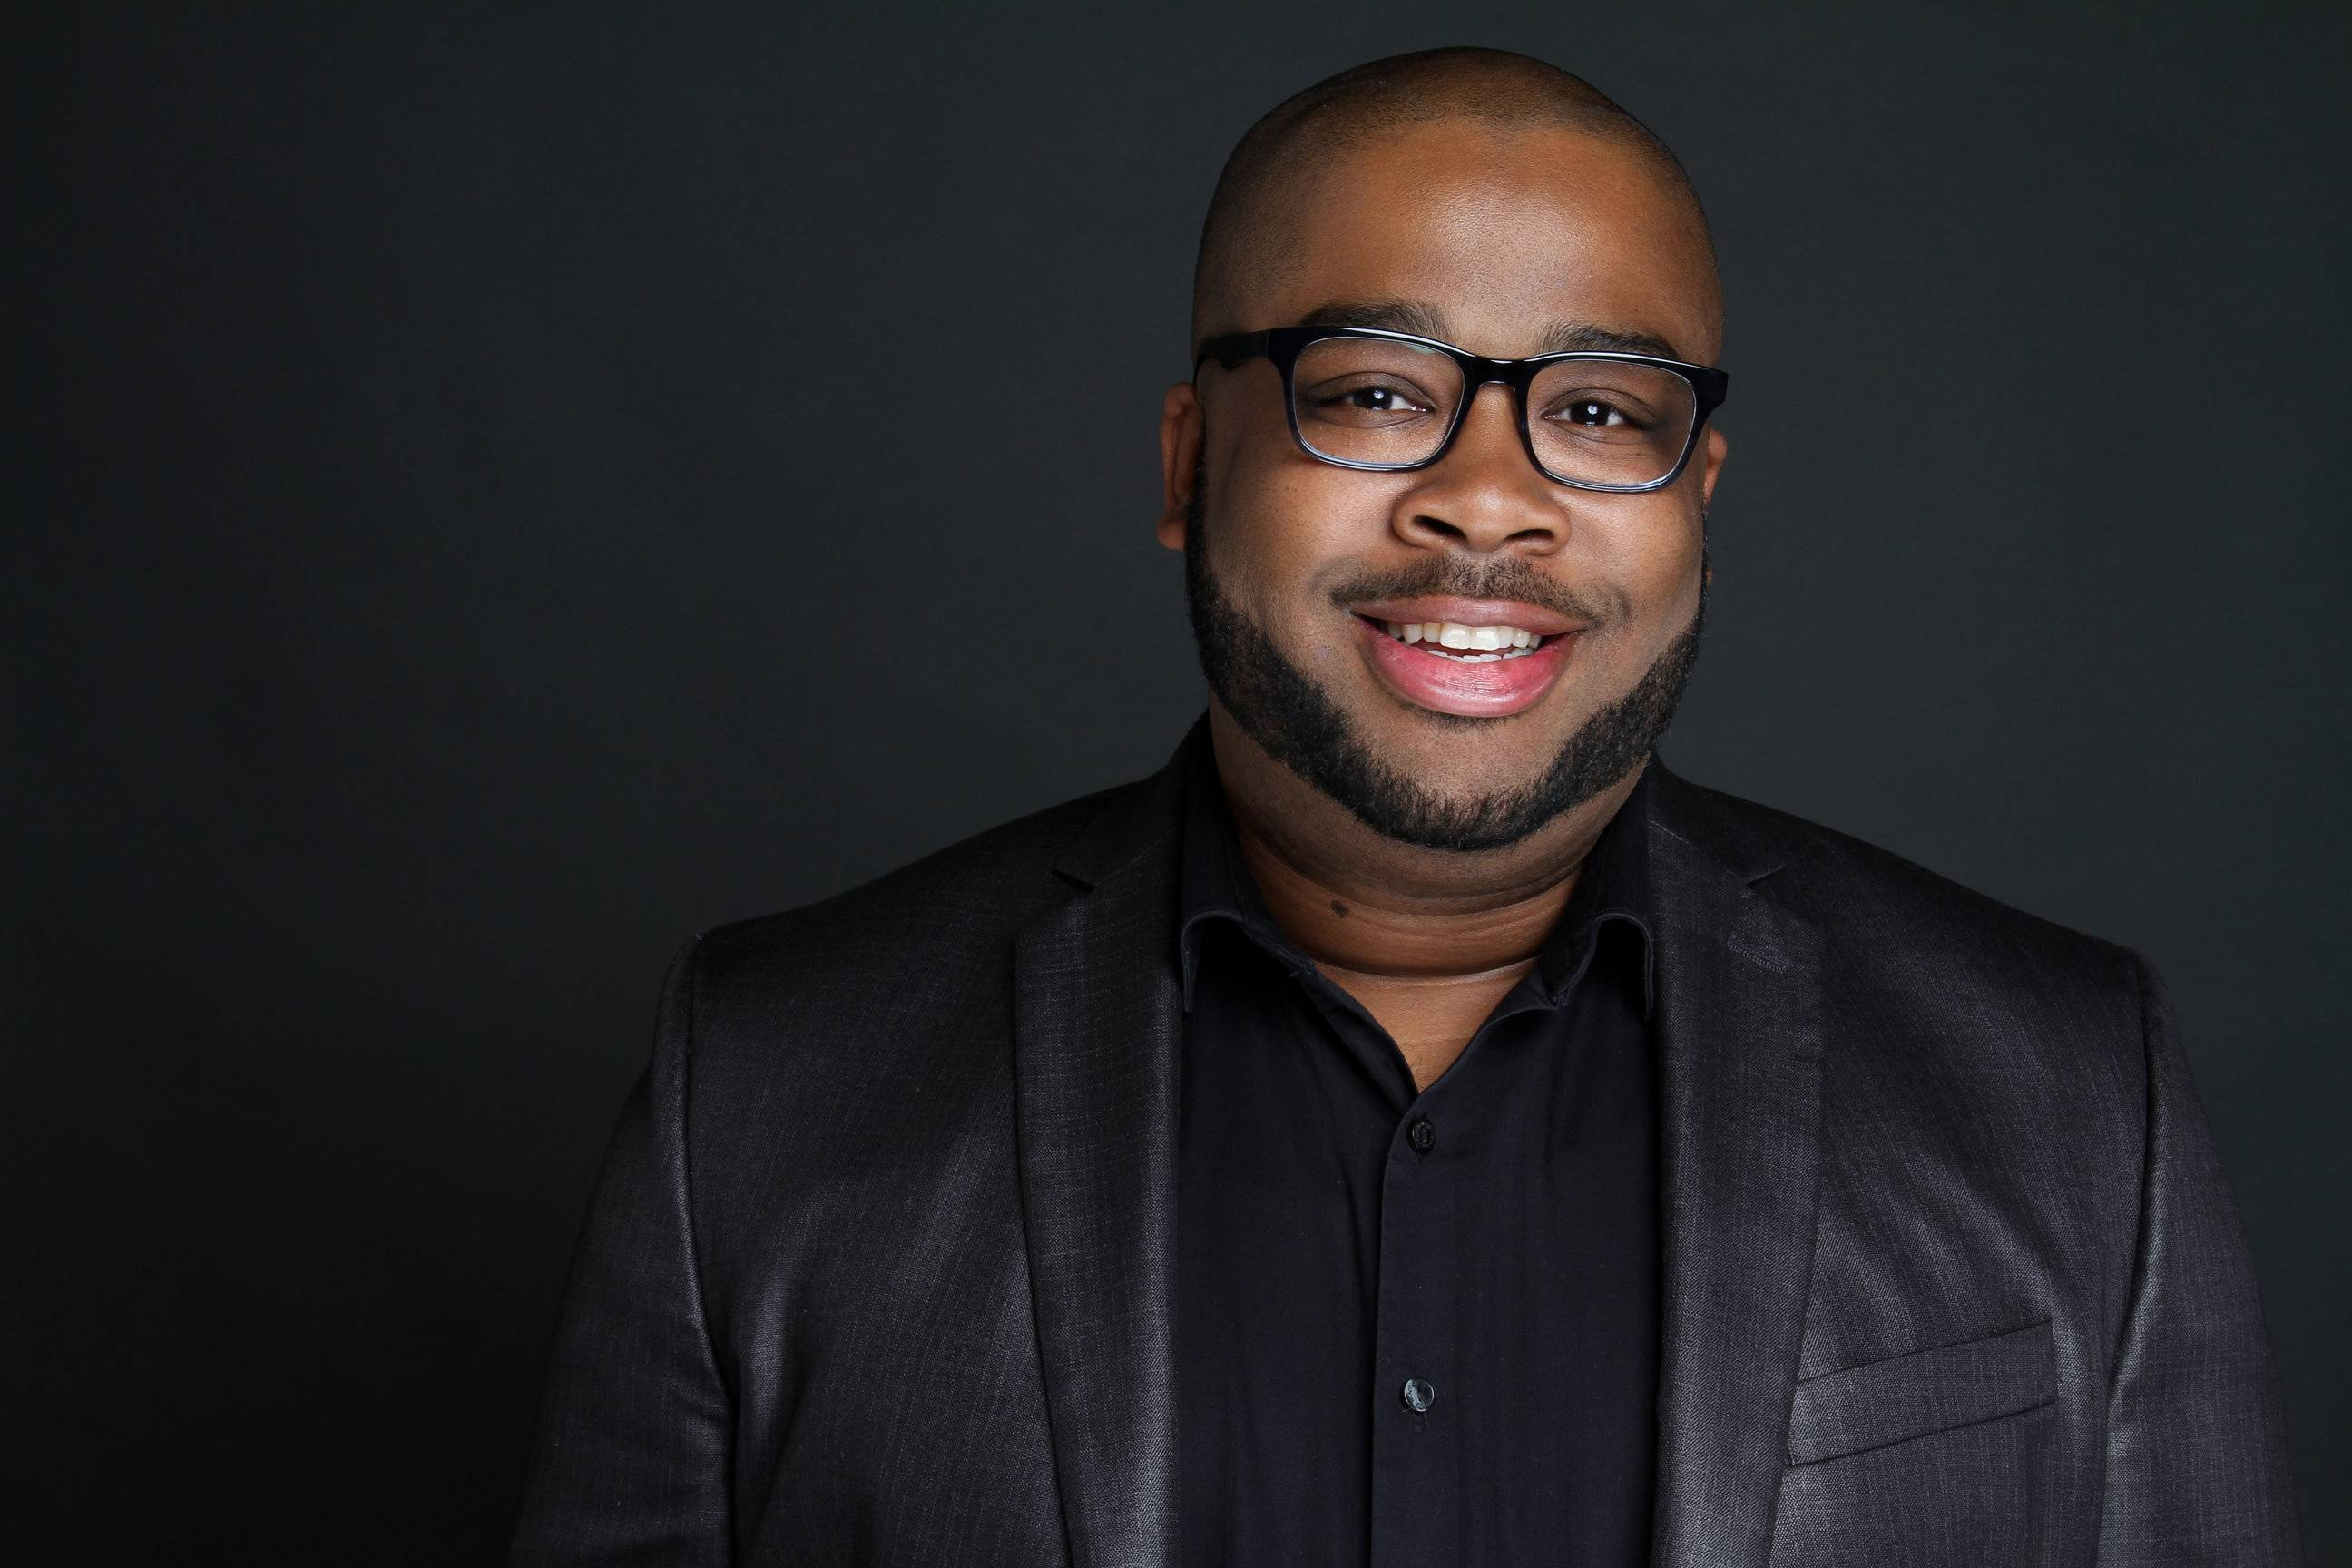 Mark Luckie, Former Twitter Exec - Mark Luckie is one of the the tech world's most dynamic voices within the movement for Black lives. He once spearheaded journalism efforts at Twitter and recently joined the Reddit community.(Photo: Tinnetta Bell)